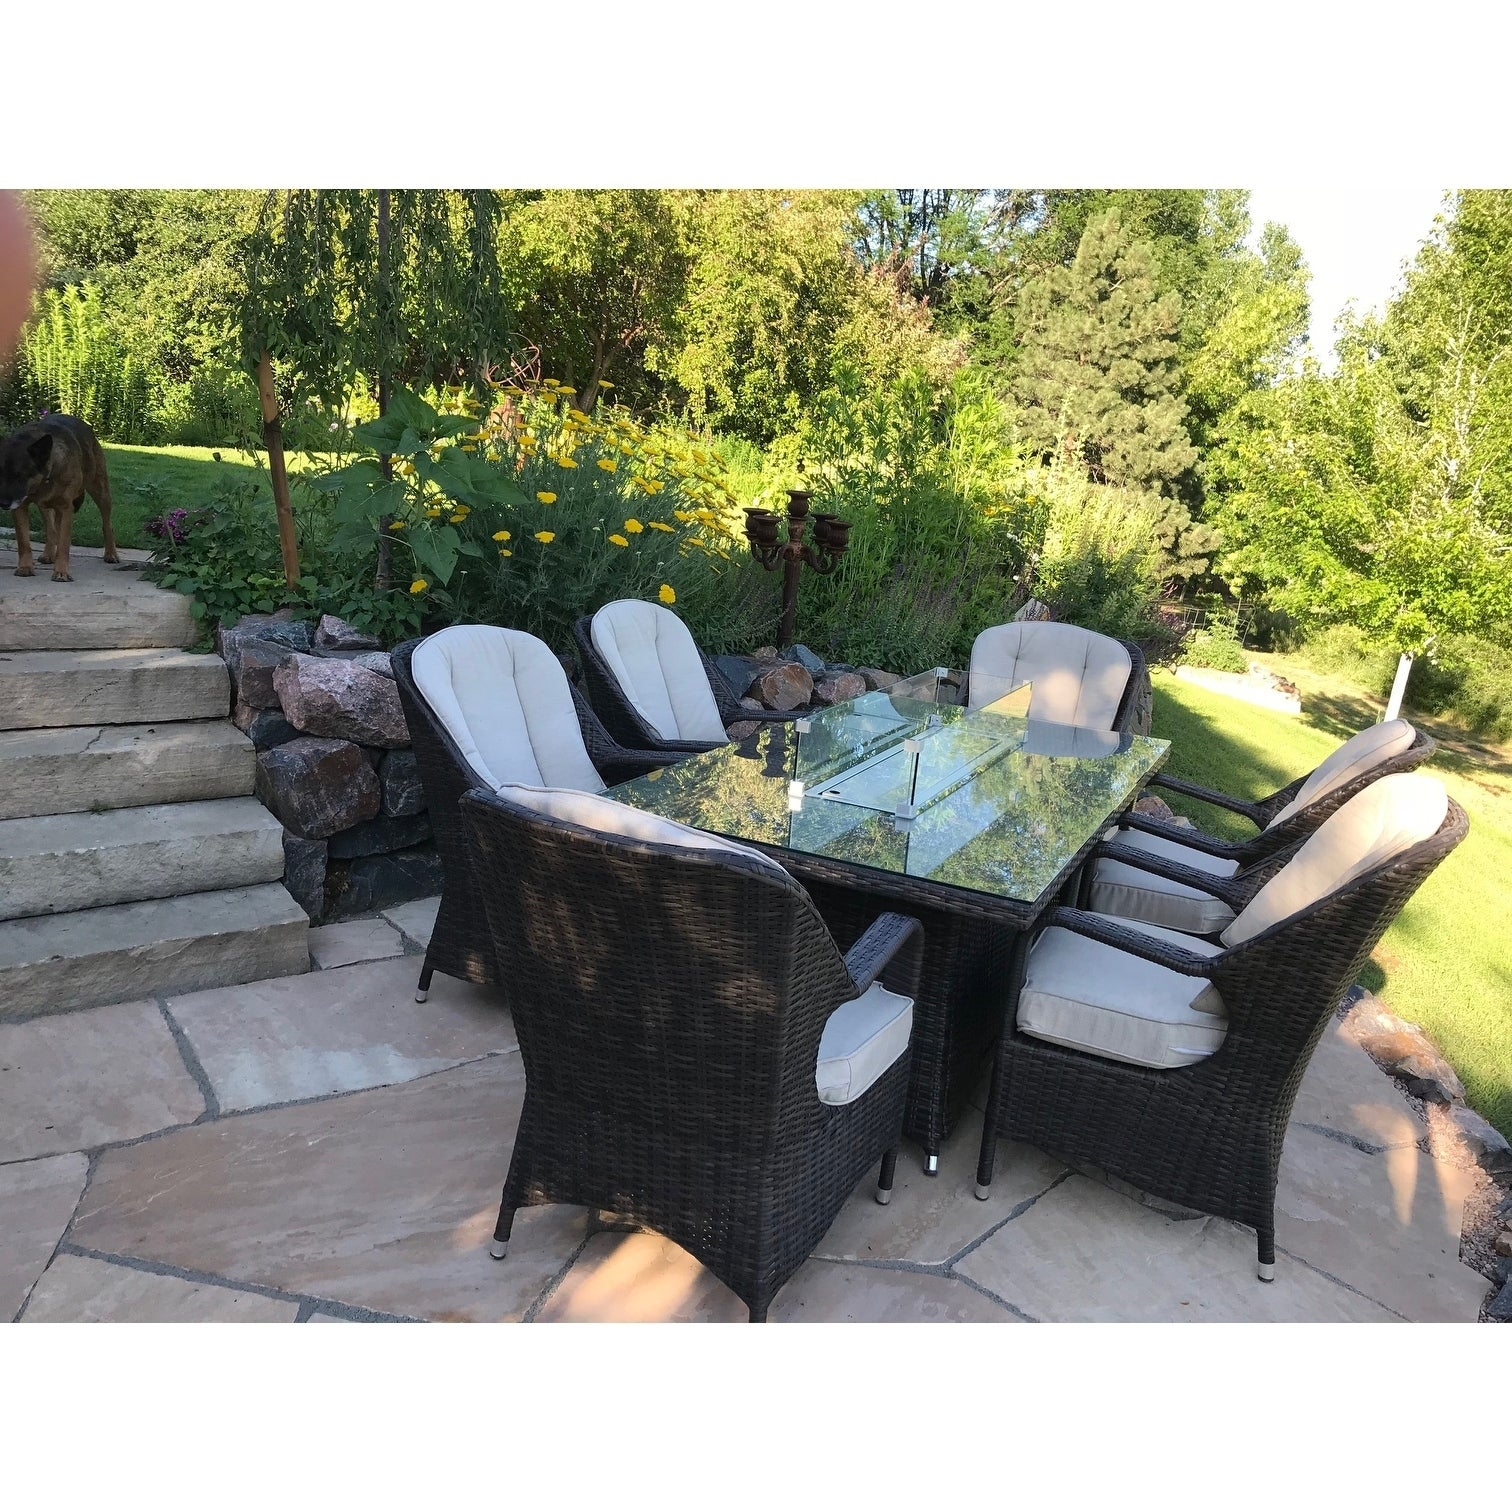 Turnbury Outdoor 7 Piece Patio